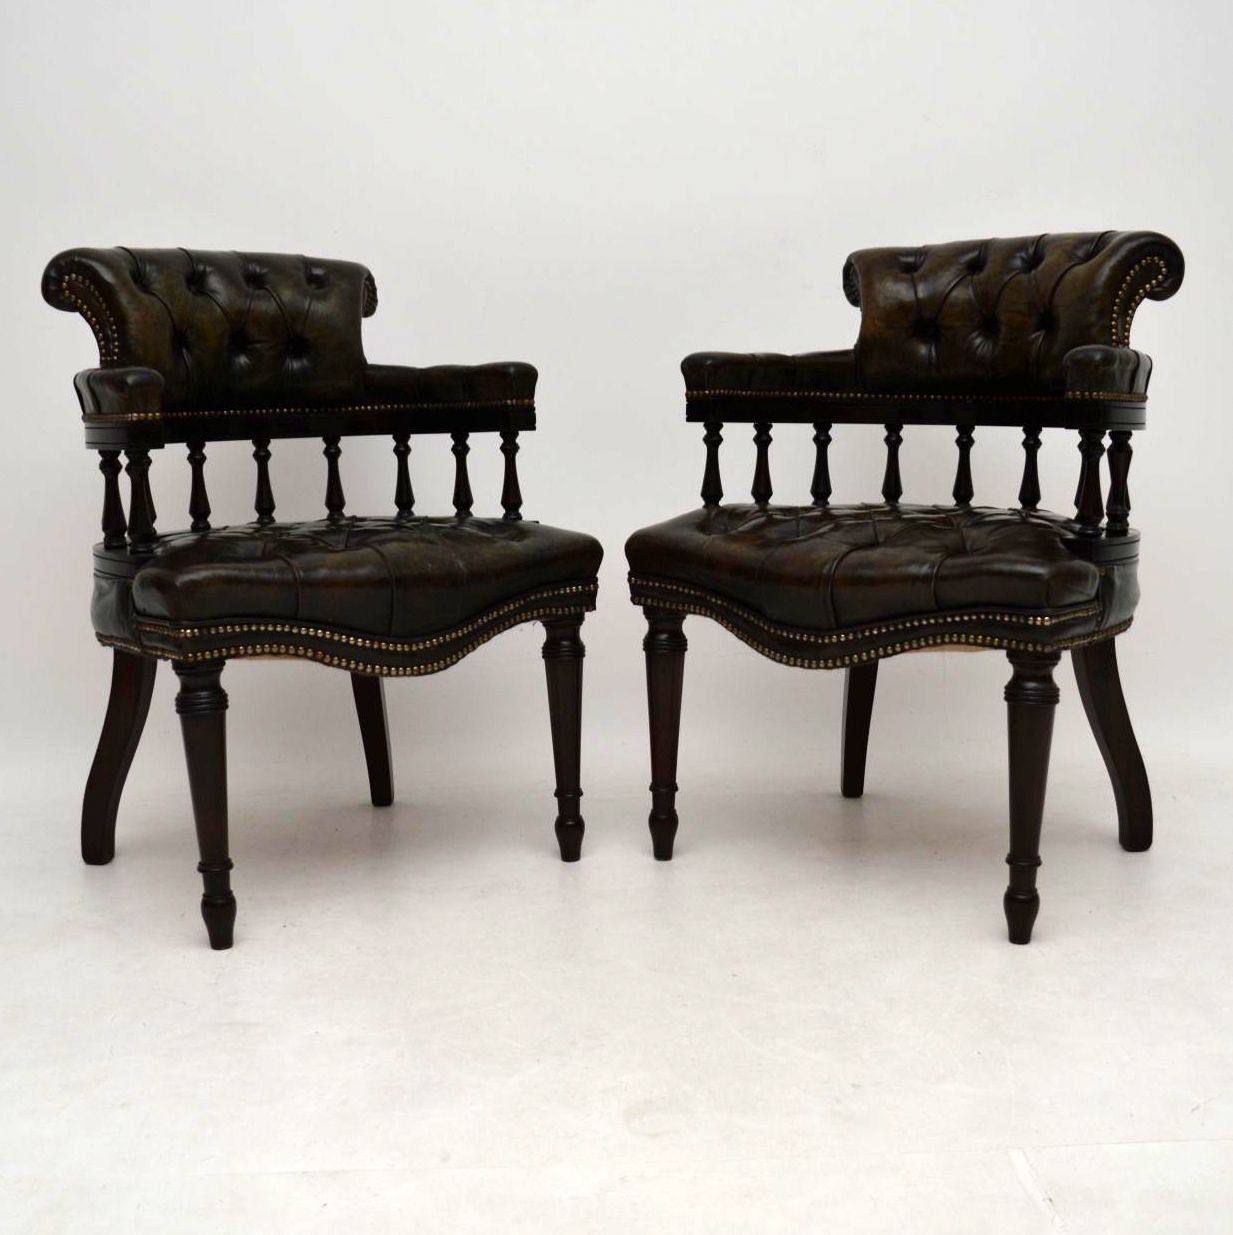 Pair of Antique Distressed Leather & Mahogany Armchairs